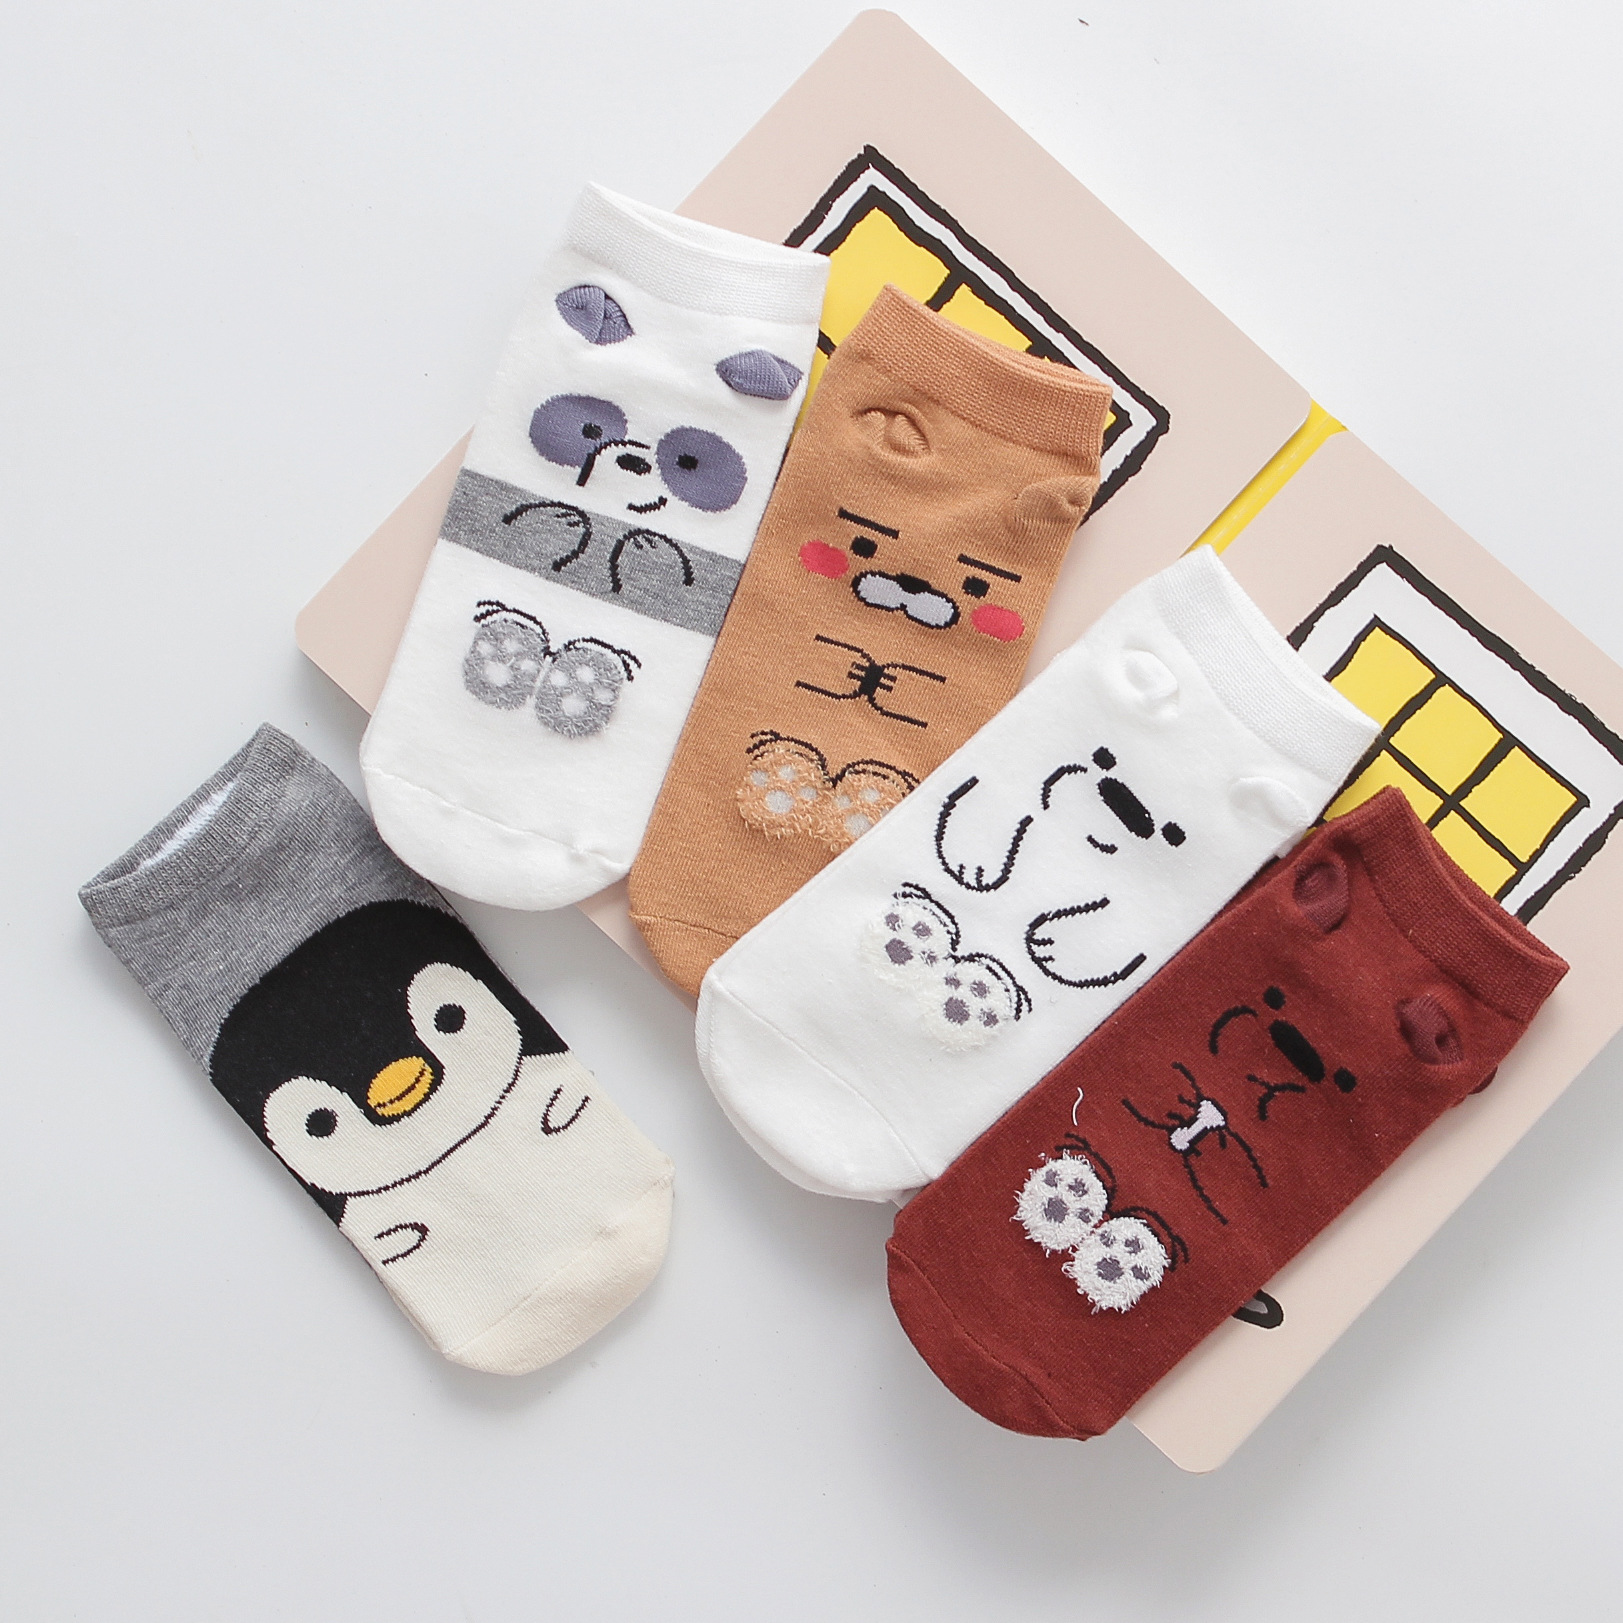 Ladies Socks Women Fashion Cartoon Socks Cotton Kitten Puppy Animal Pattern Cute Kawaii Funny Socks For Girls Short Ankle Socks